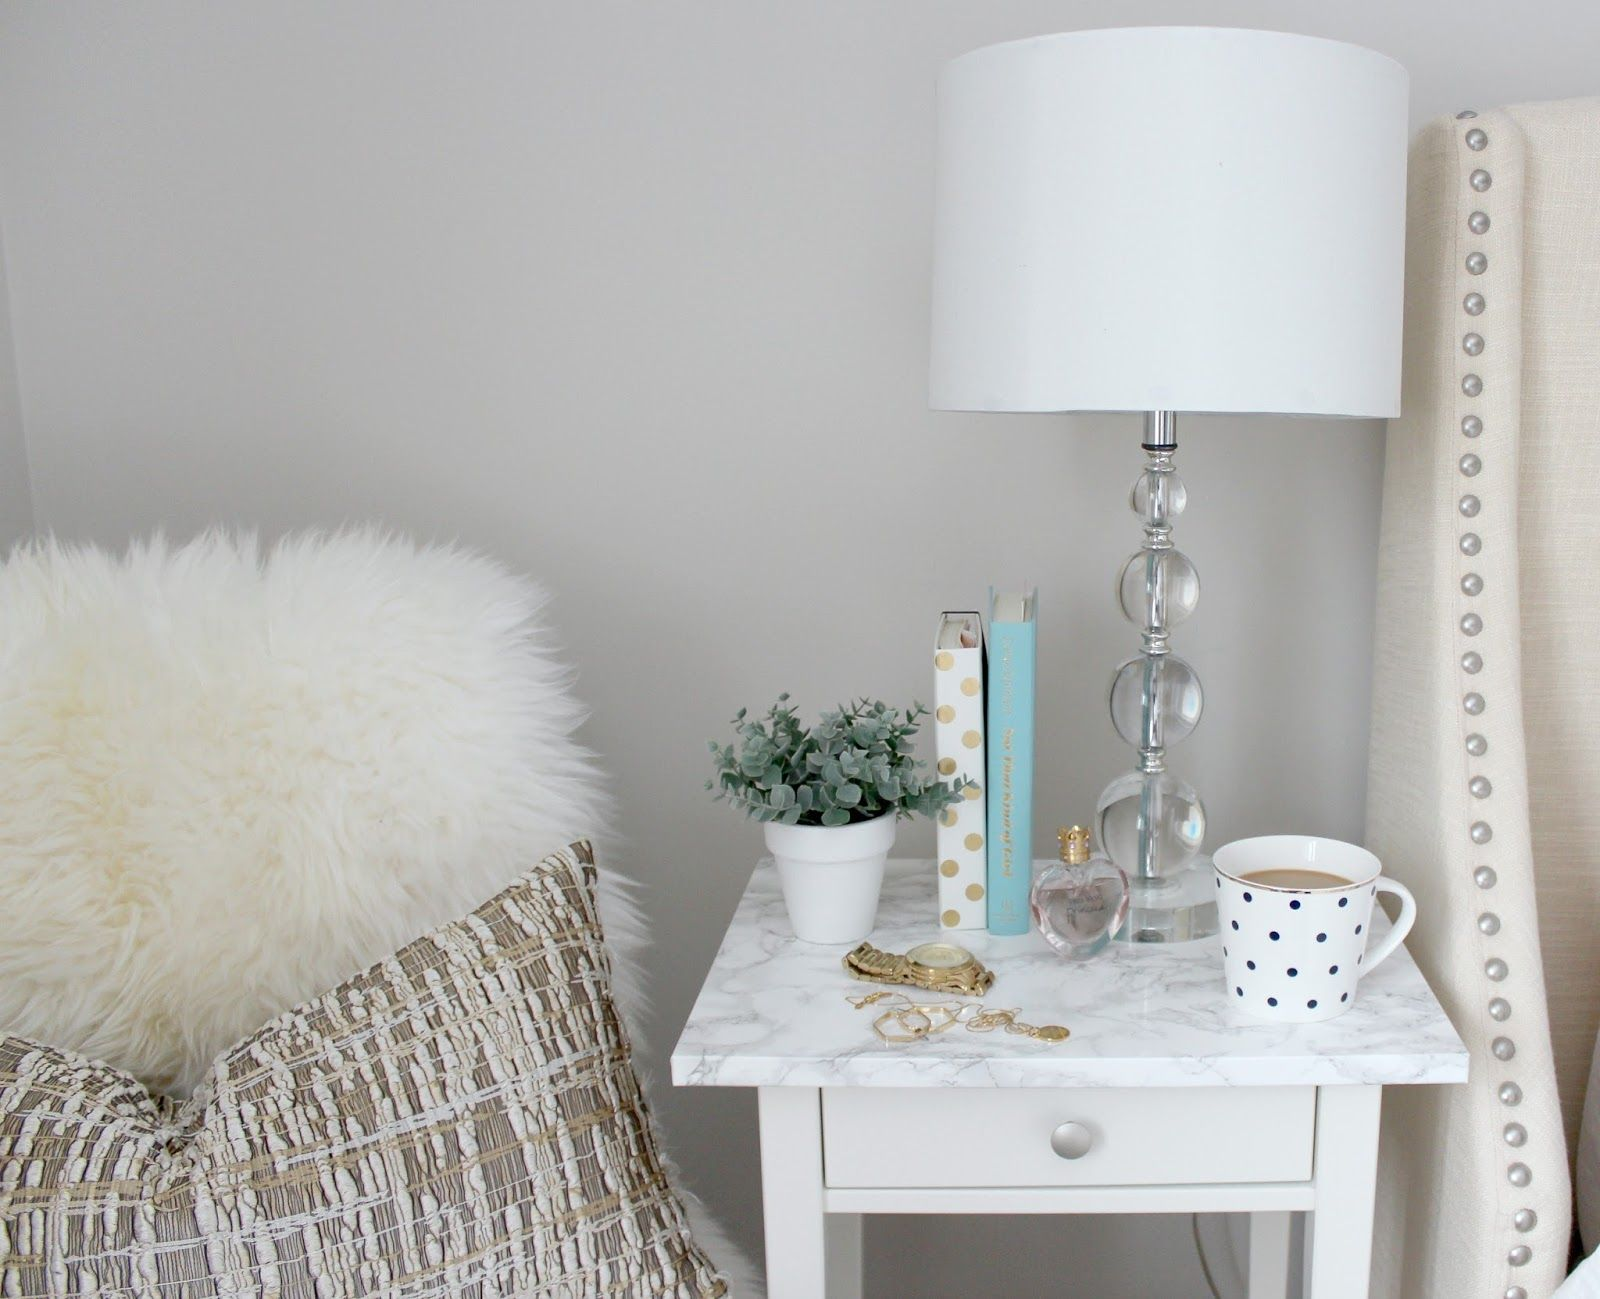 How To Jazz Up A Simple Ikea Hemnes Nightstand. This Simple